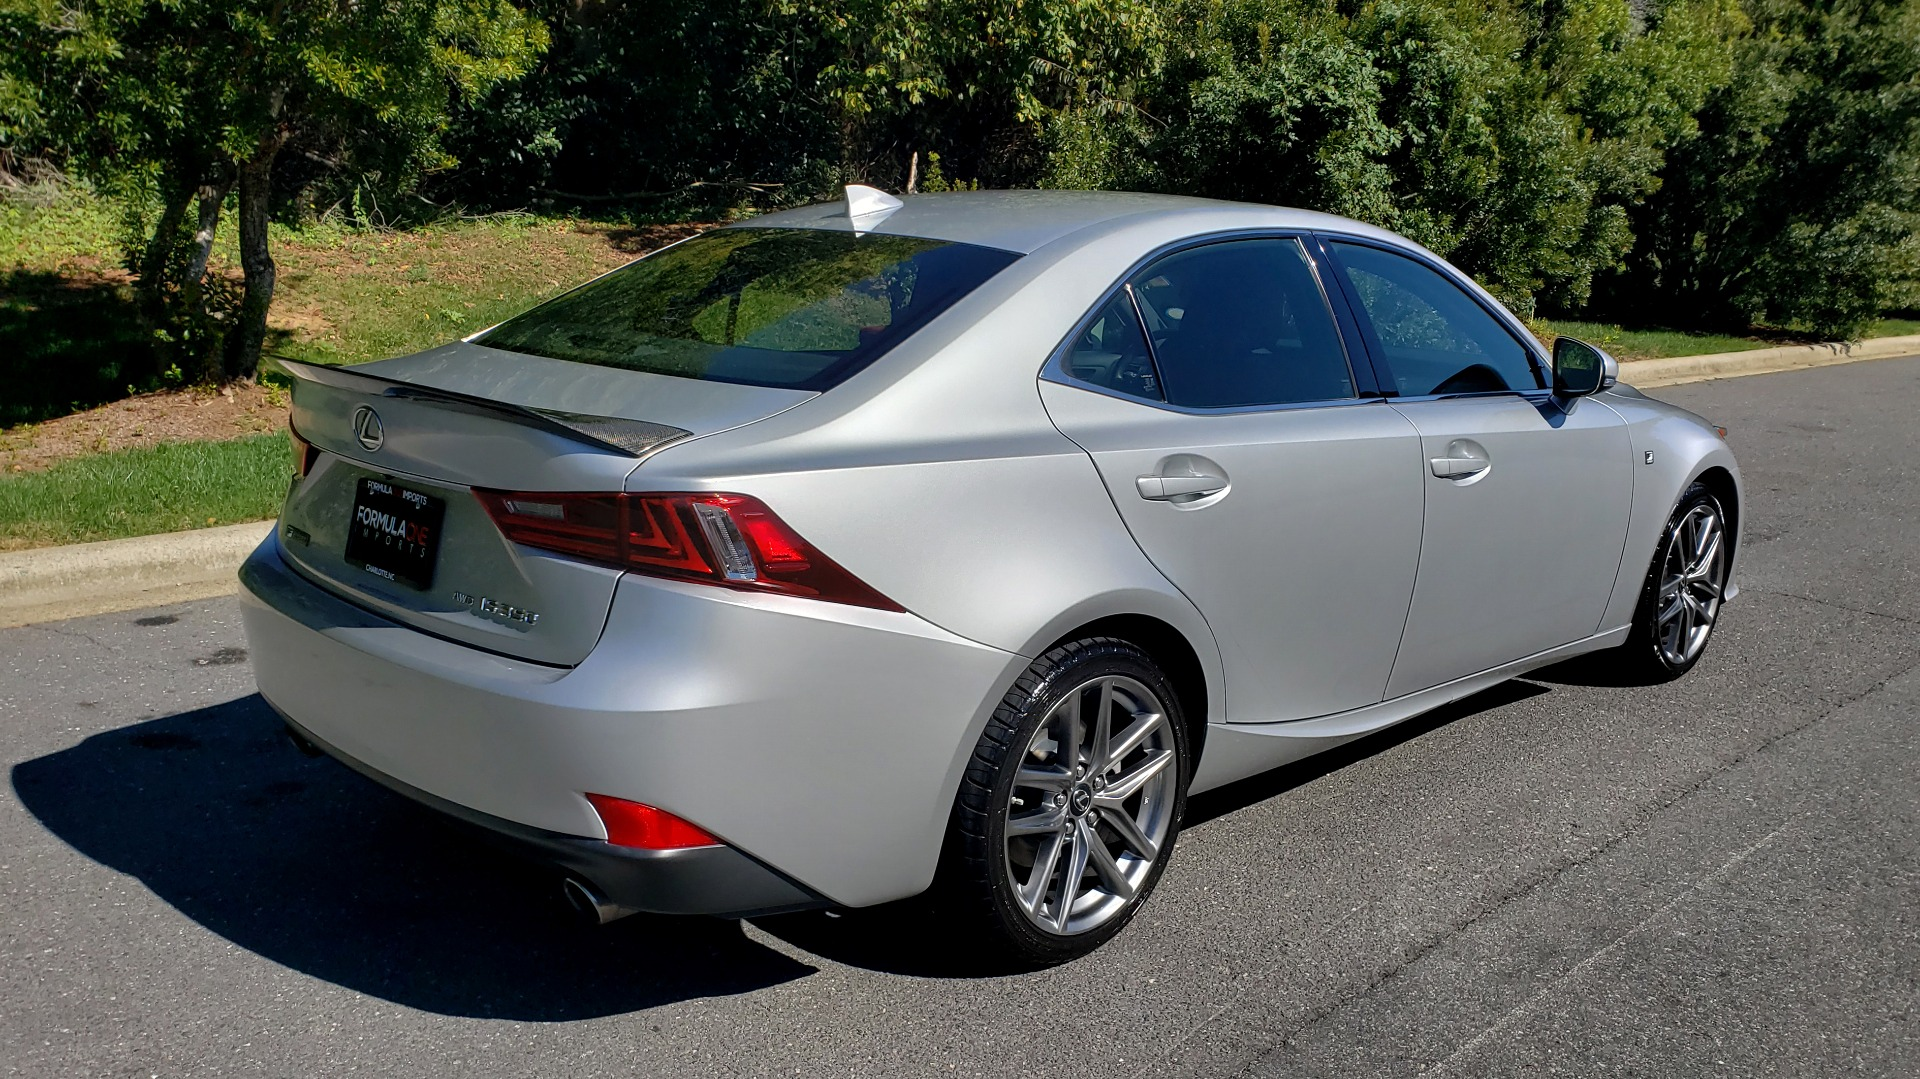 Used 2015 Lexus IS 350 F-SPORT / AWD / NAV / SUNROOF / BSM / REARVIEW for sale Sold at Formula Imports in Charlotte NC 28227 6